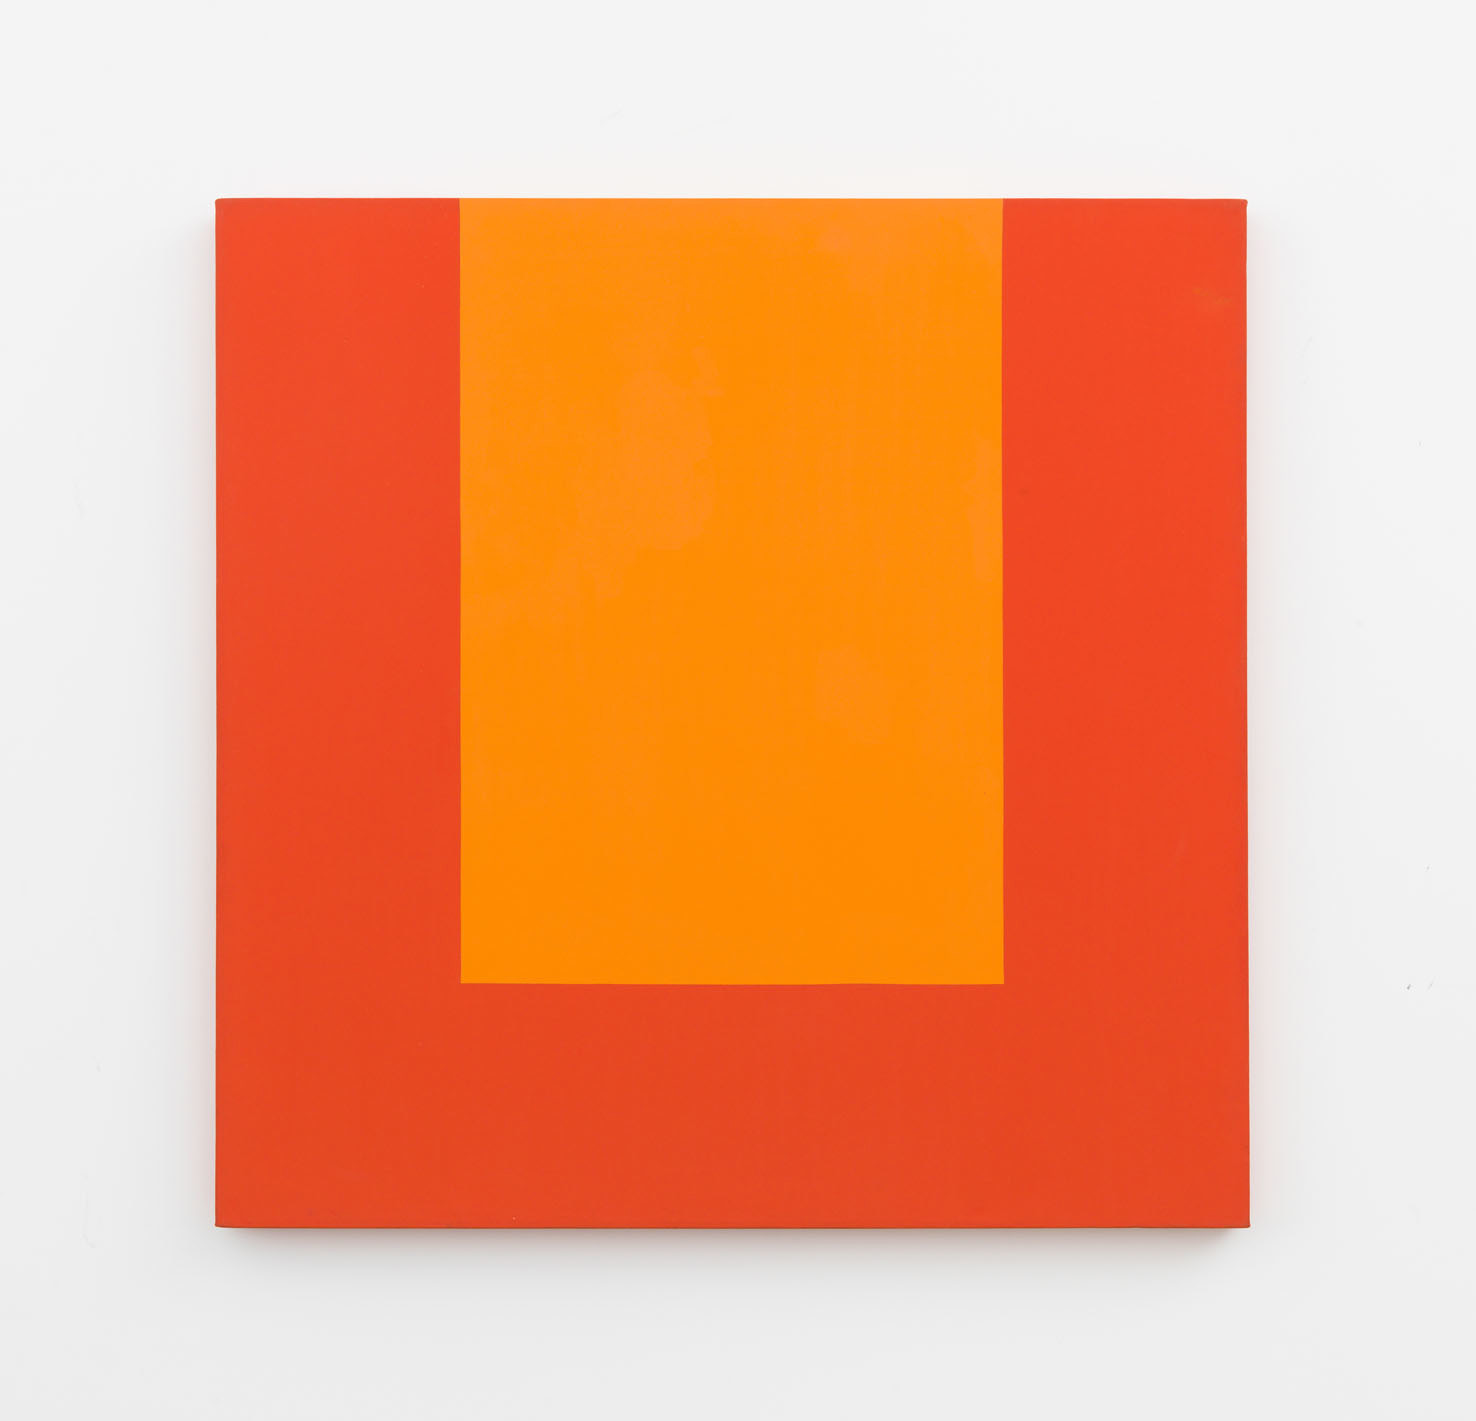 Carmen Herrera ,  Orange & Red,  1989, Acrylic on canvas 109.2 x 106.7 cm / 43 x 42 in